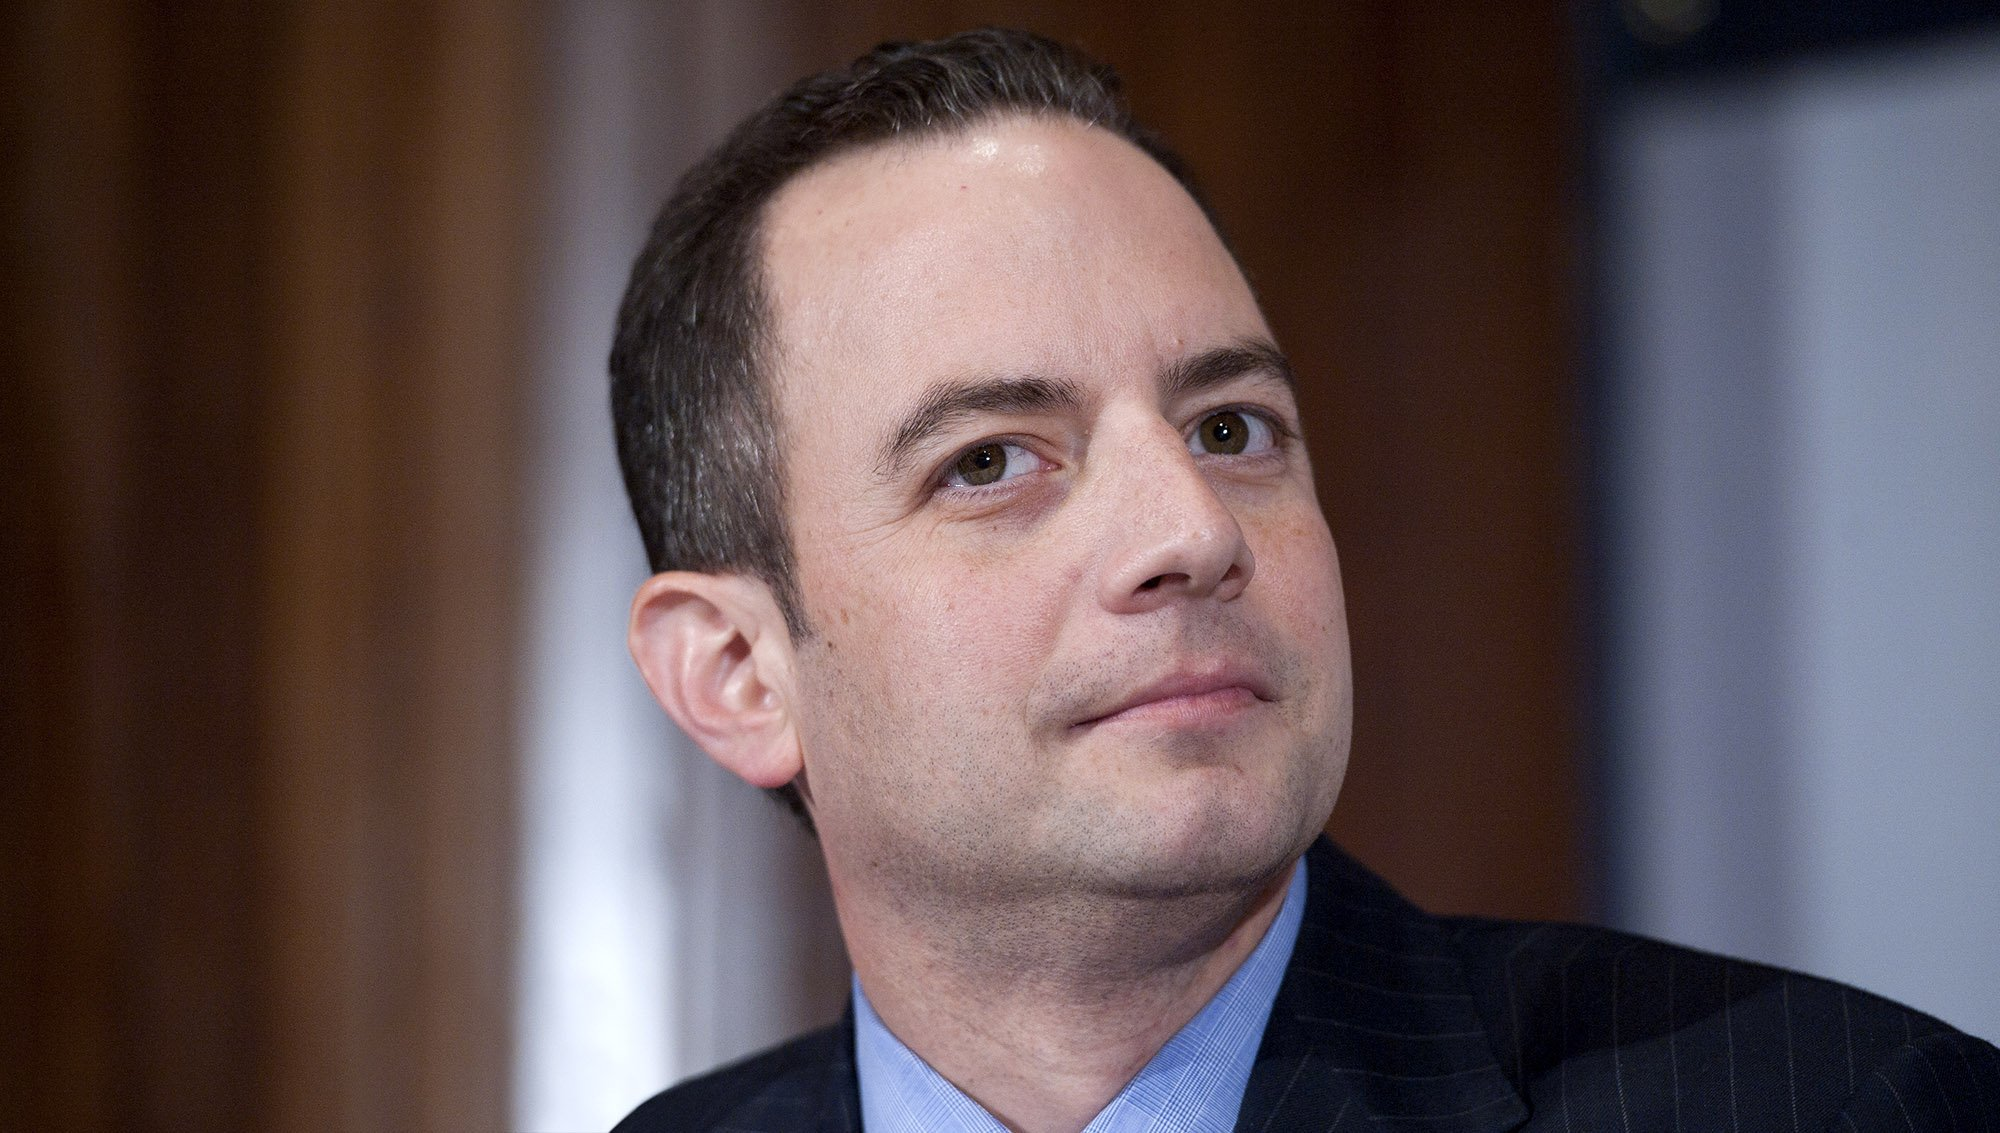 Priebus Grateful He Had So Little Dignity To Begin With https://t.co/pa2bI2fnT0 https://t.co/4ENVBEizaa